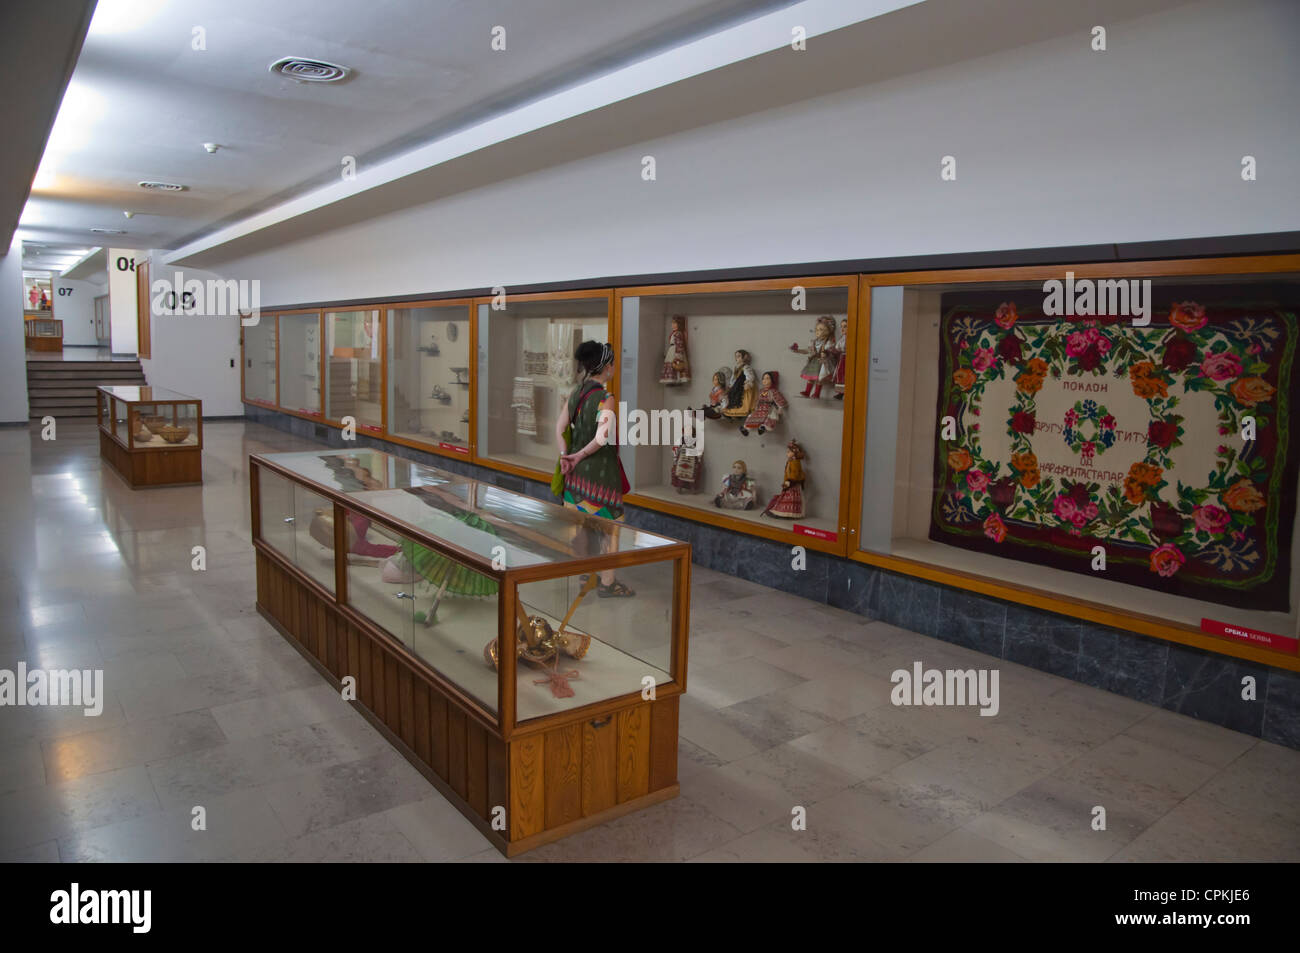 Museum displaying gifts given to former leader Tito in a museum next to House of Flowers Tito's grave Belgrade - Stock Image